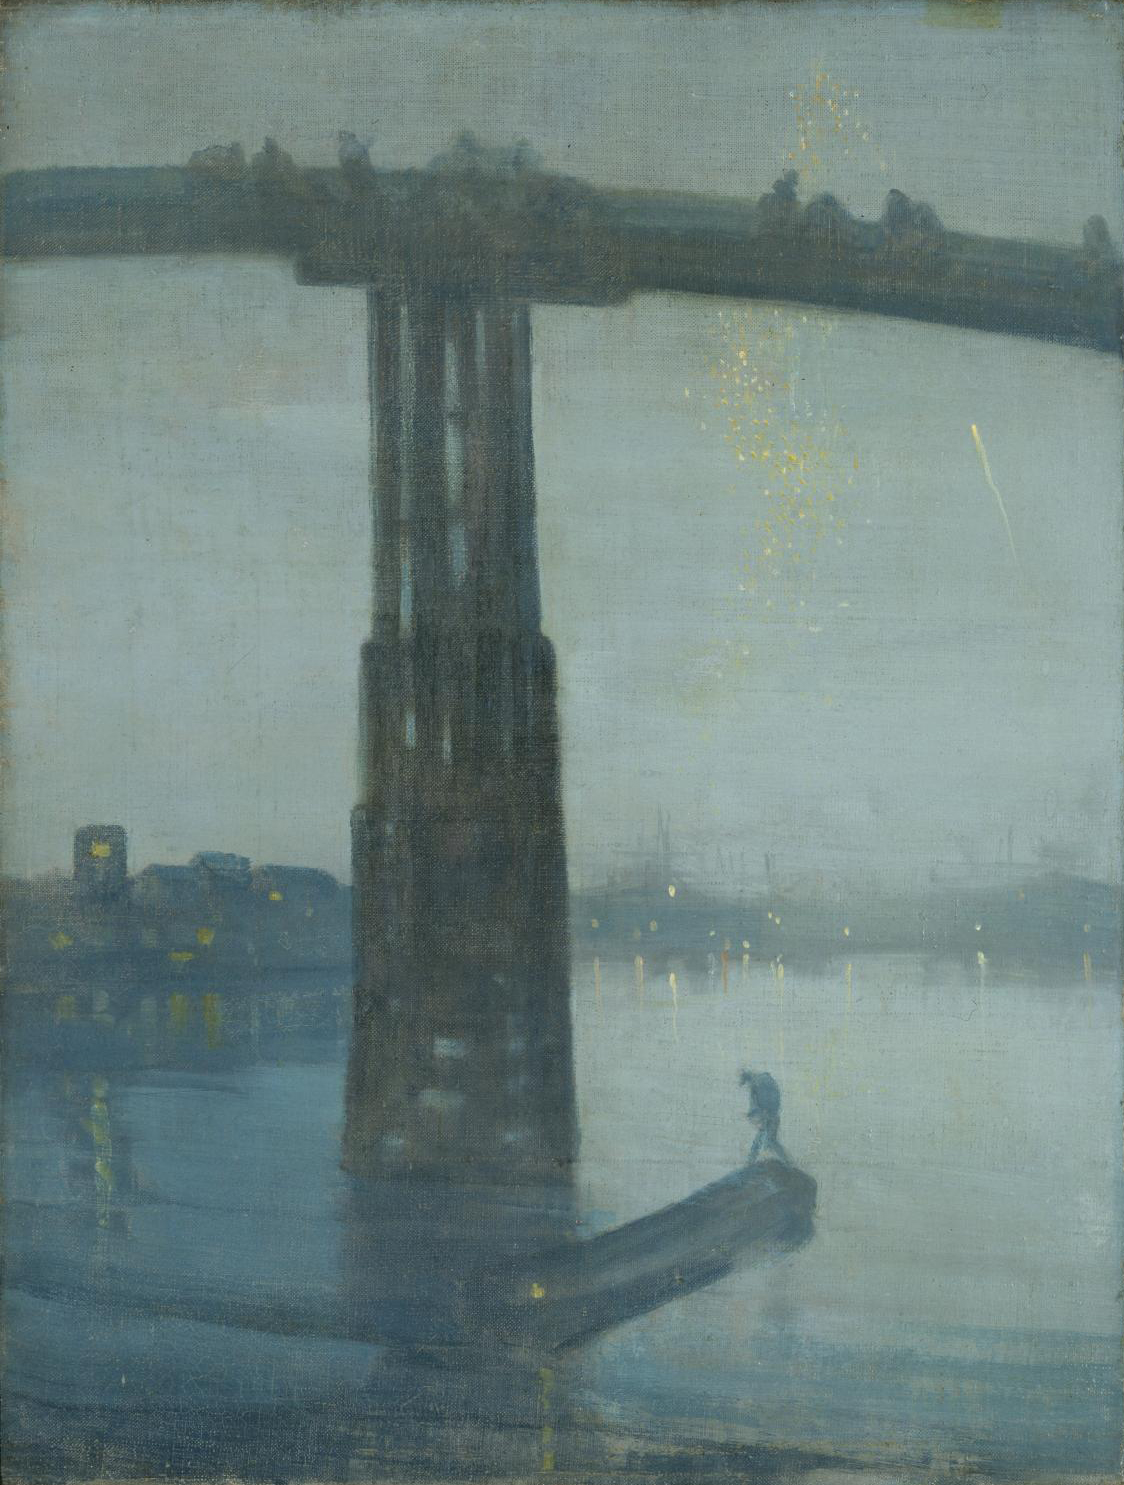 Nocturne in Blue and Gold: Old Battersea Bridge (courtesy to Wikipedia Commons)